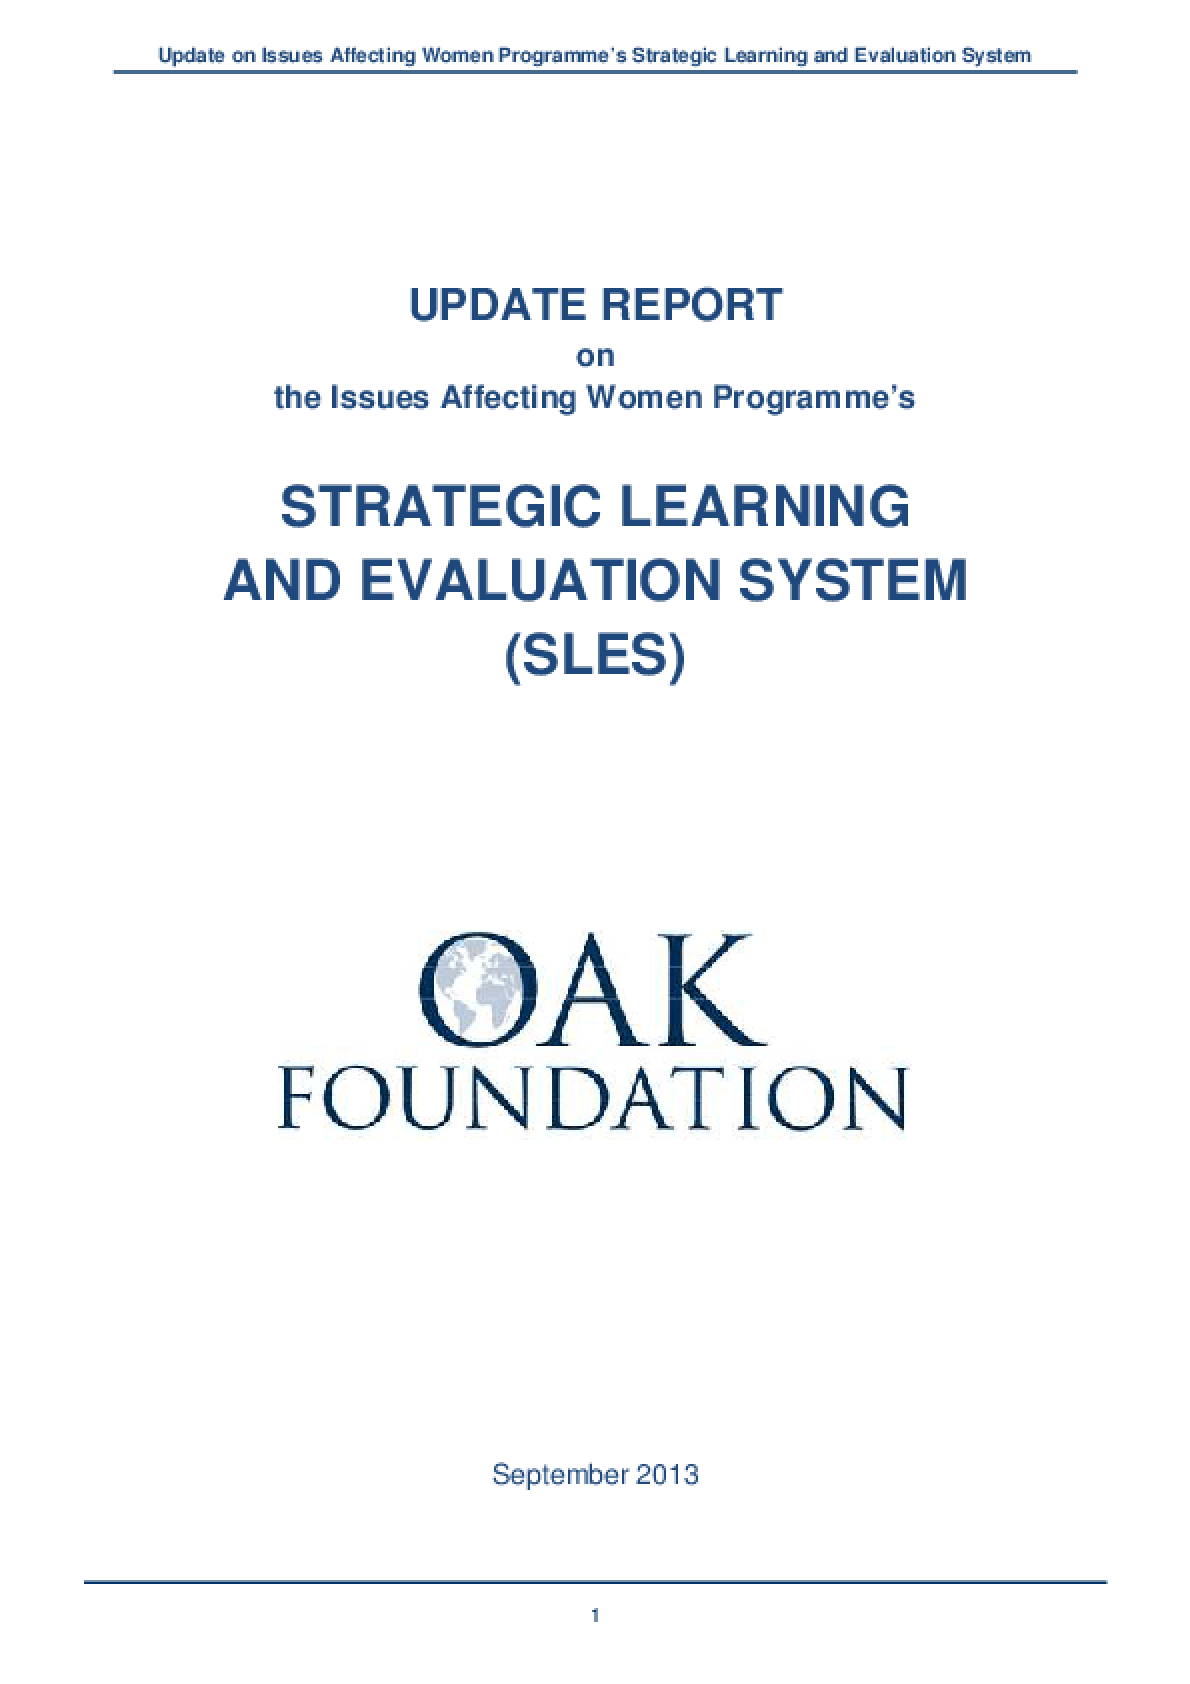 Update Report on the Issues Affecting Women Programme's Strategic Learning and Evaluation System